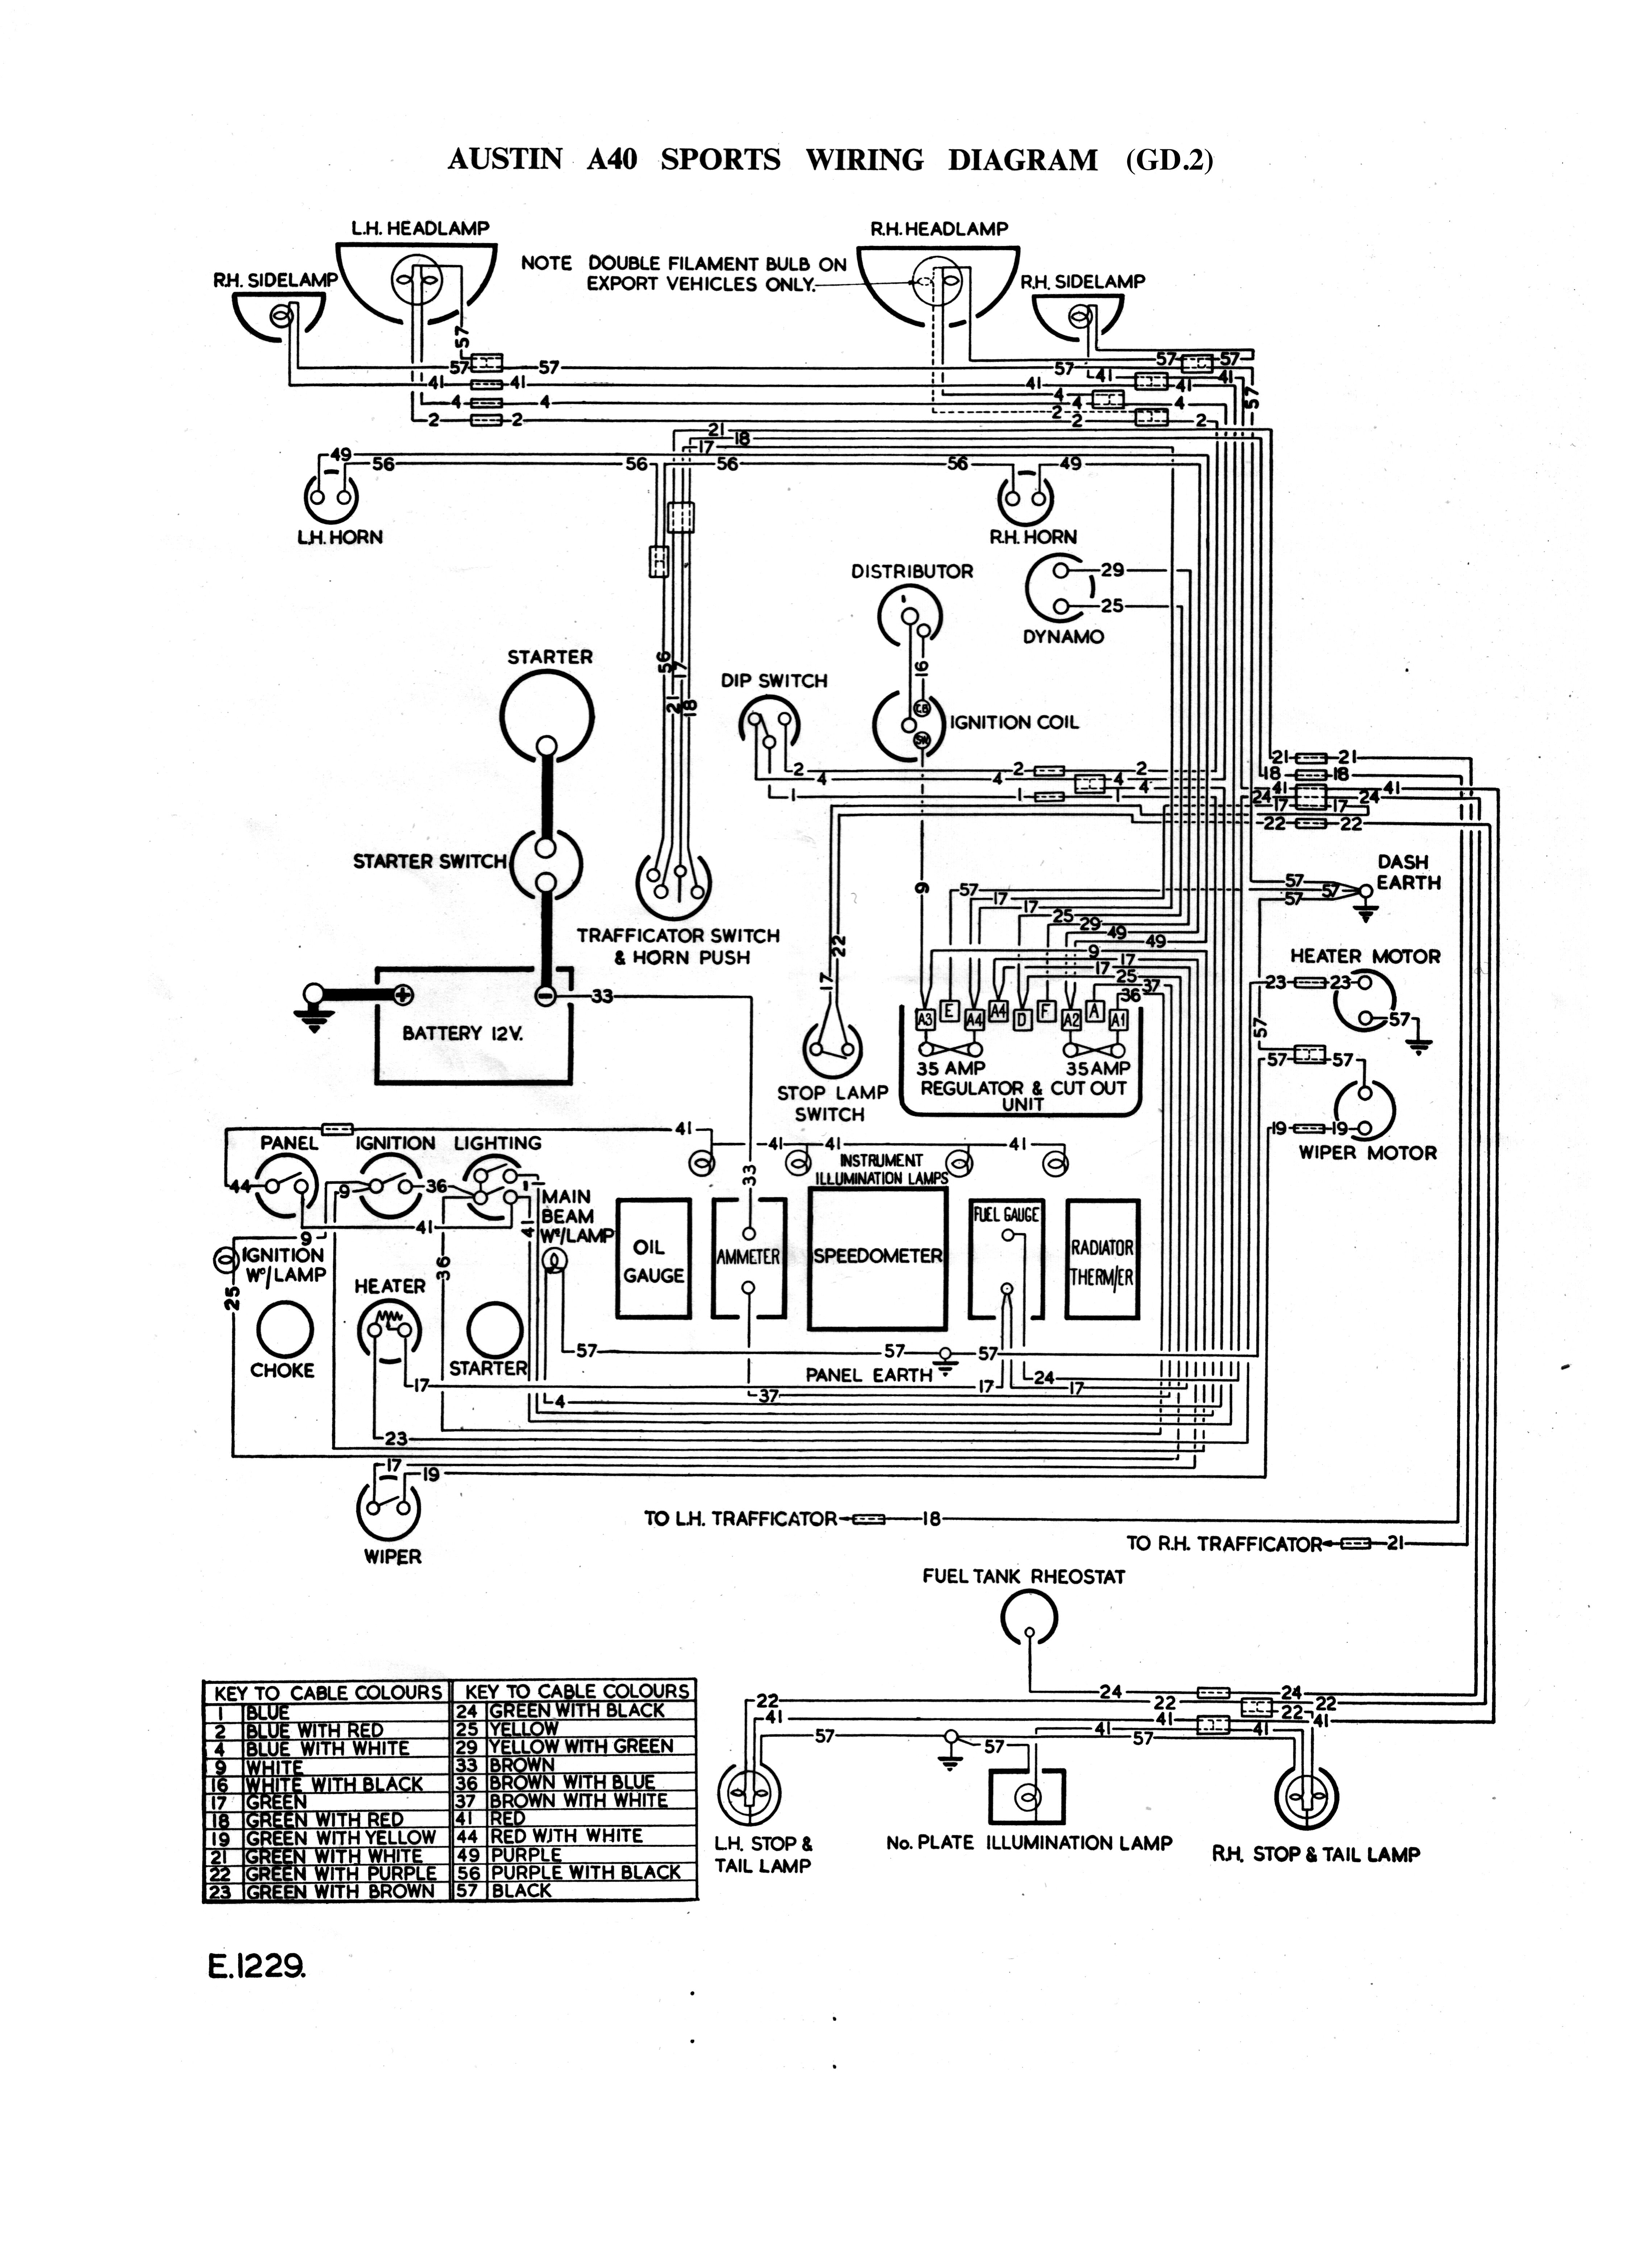 1000 Ideas About Electrical Wiring Diagram On Pinterest Austin A40 Sports Gd2 Wiring Diagram Austin A30 Amp A40